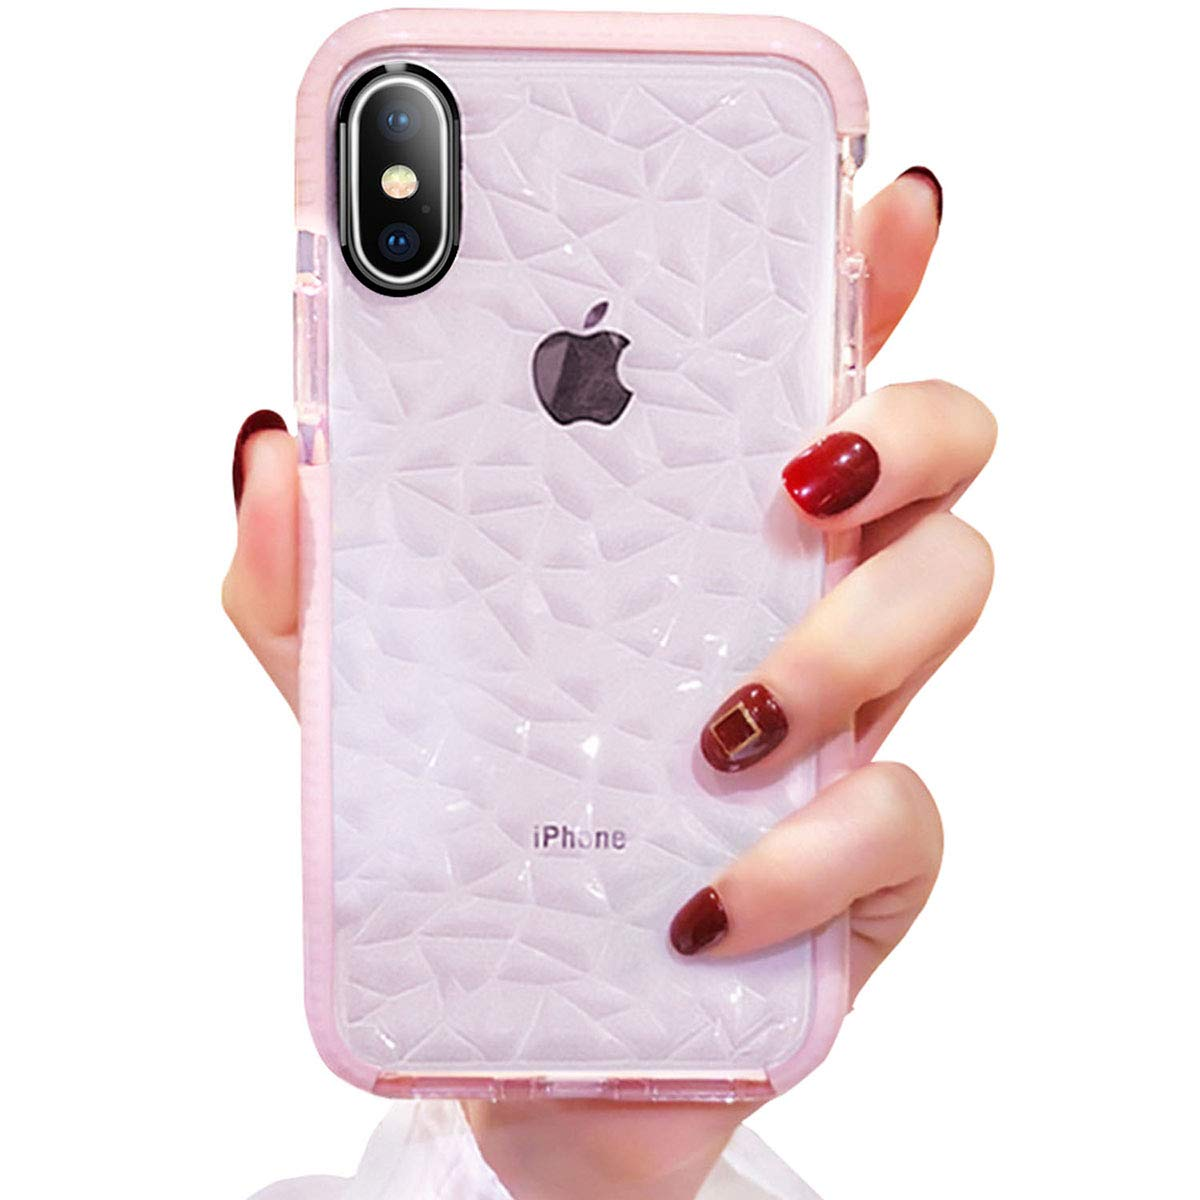 Compatible for iPhone X/XS Case Girls Women Cute Clear Cover with Diamond Pattern Design Slim Soft TPU Protective Shell Pretty Fashion Girly Phone Case Compatible iPhone X/XS (Pink)